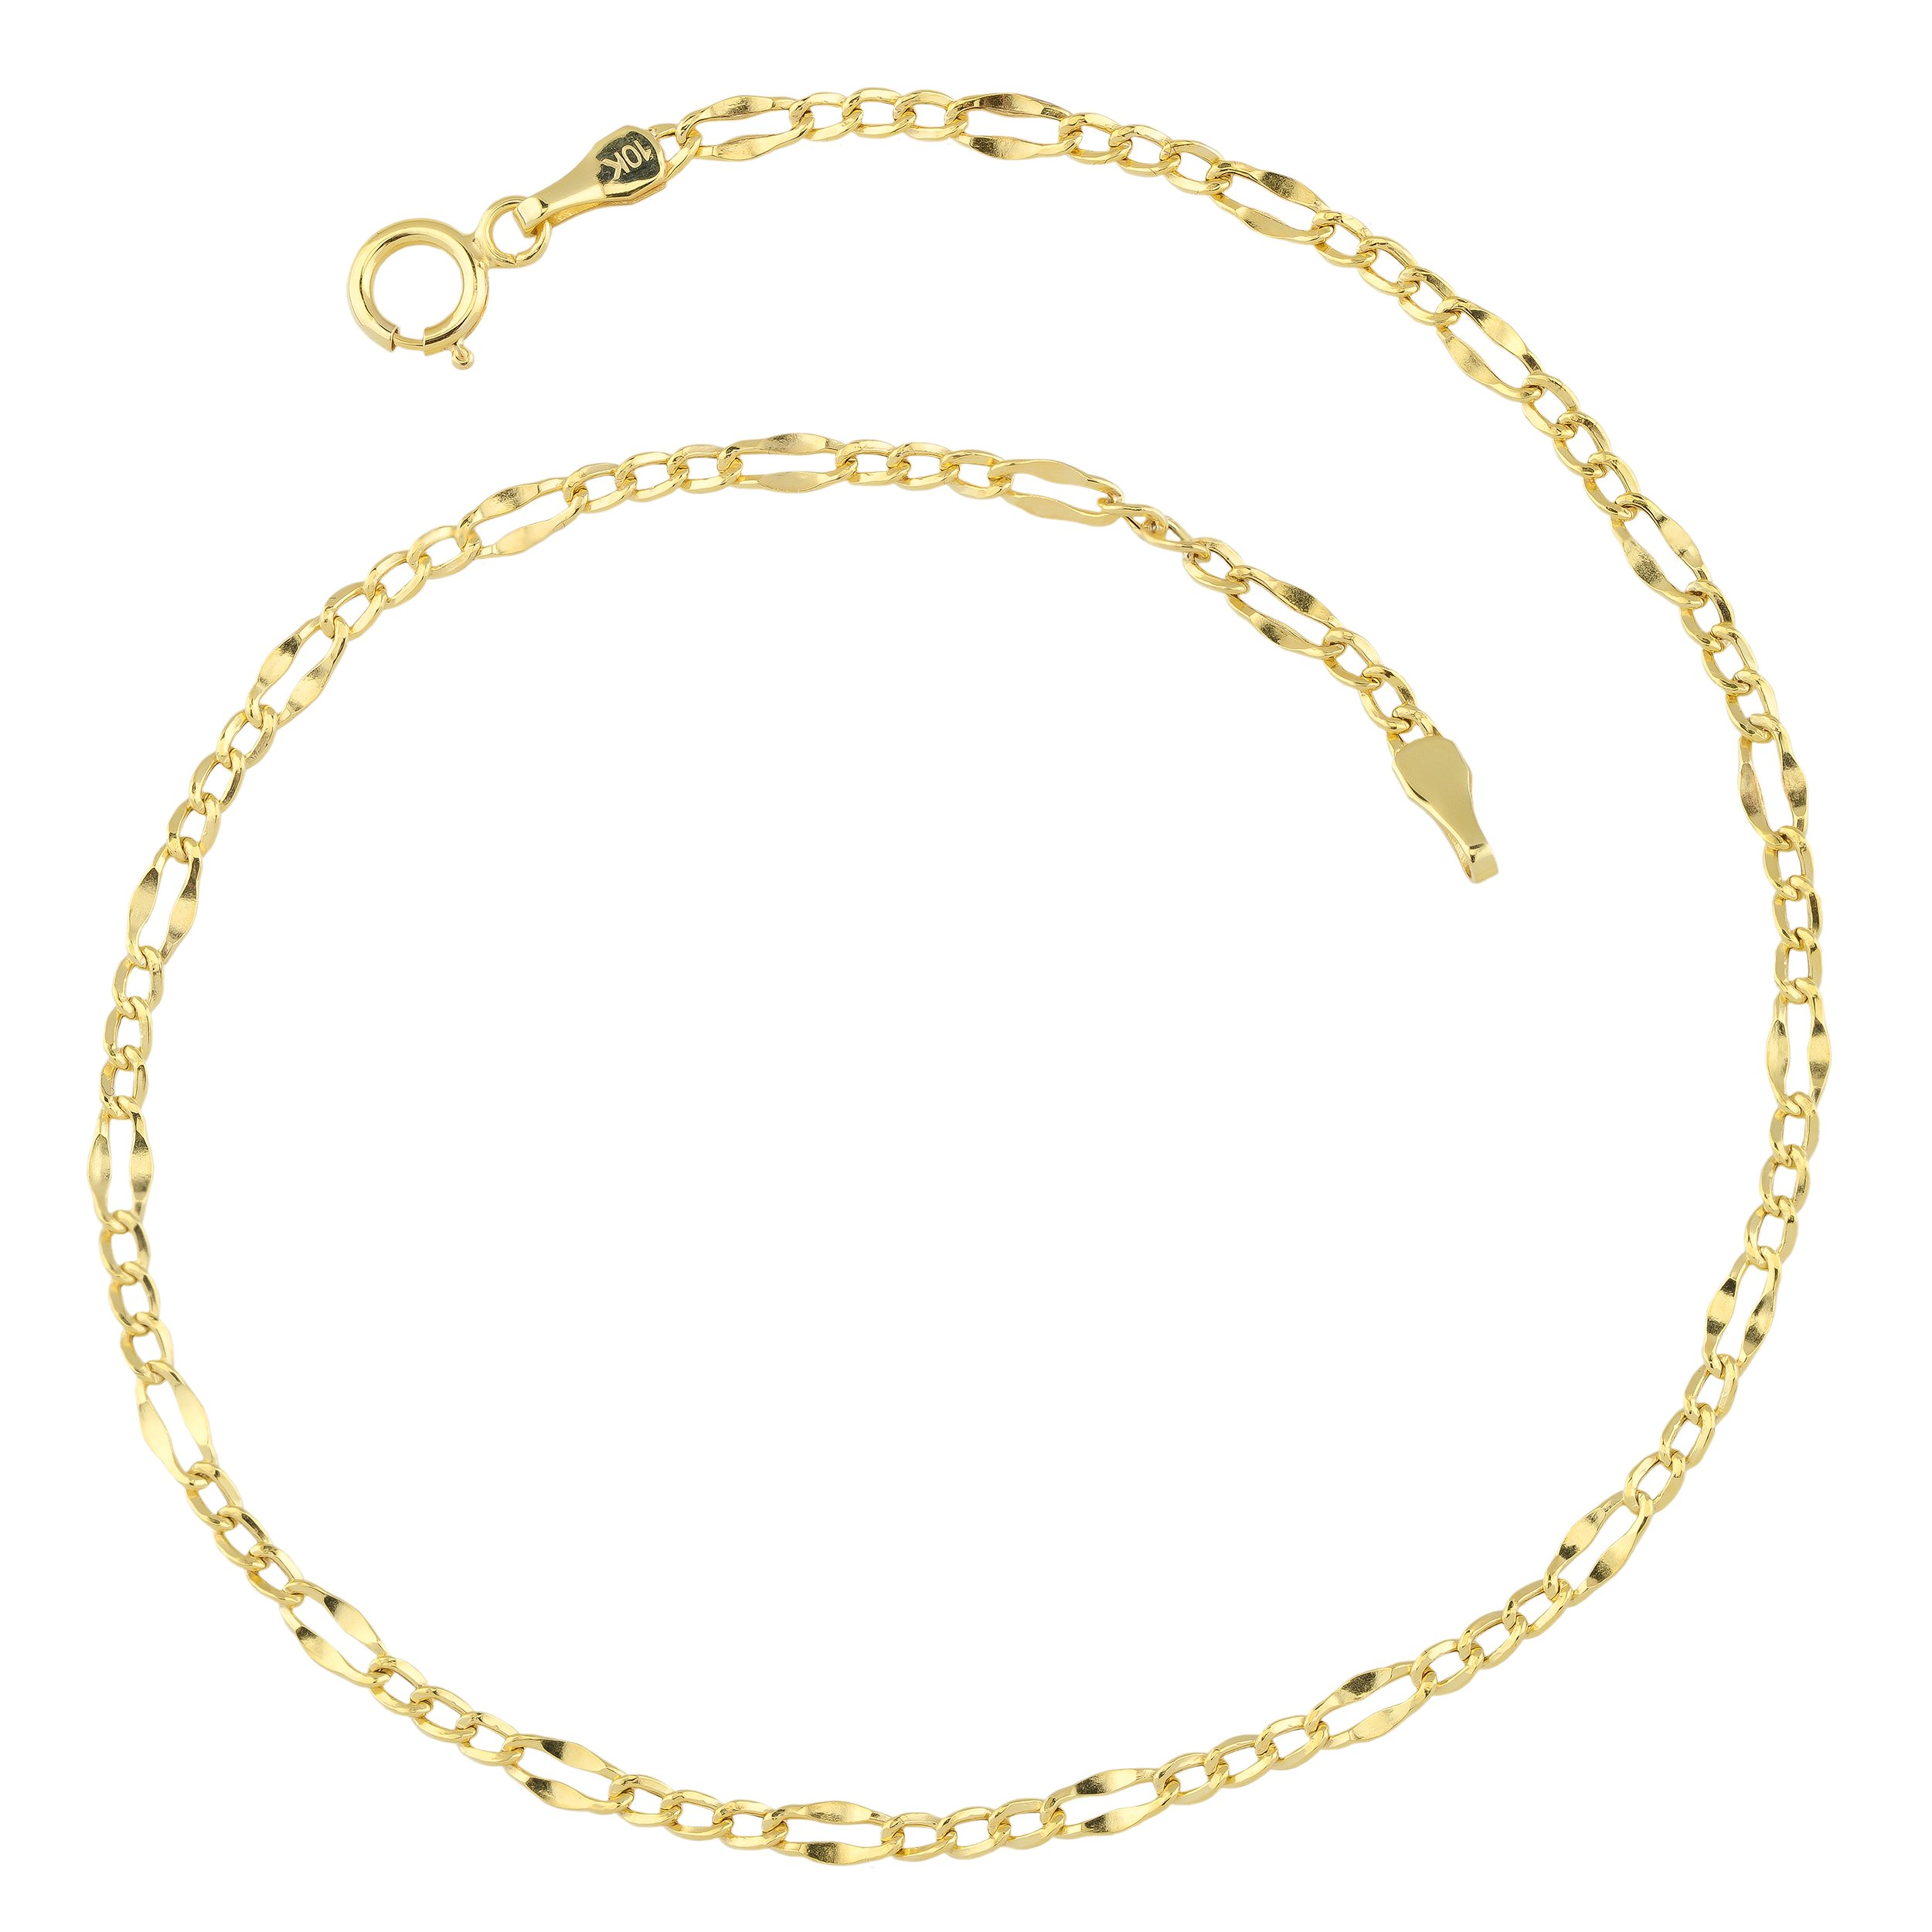 10k Yellow Gold Figaro Link Anklet (2.3mm, 9 inch) by Kooljewelry (Image #1)